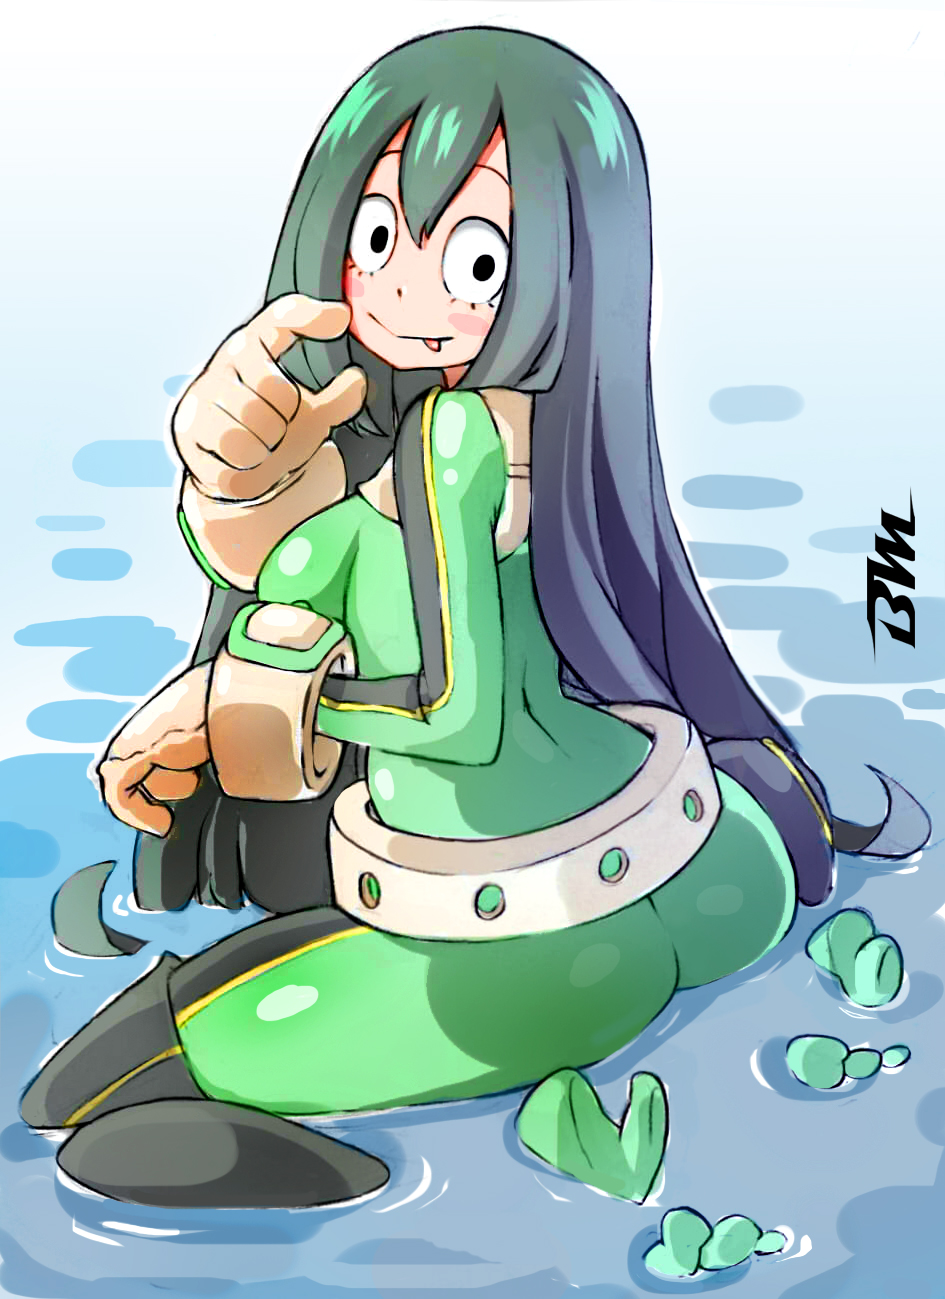 1girl asui_tsuyu bayeuxman black_eyes blush_stickers bodysuit boku_no_hero_academia gloves green_bodysuit green_hair hair_between_eyes highres long_hair looking_at_viewer shiny shiny_clothes shiny_hair smile solo tongue tongue_out very_long_hair water